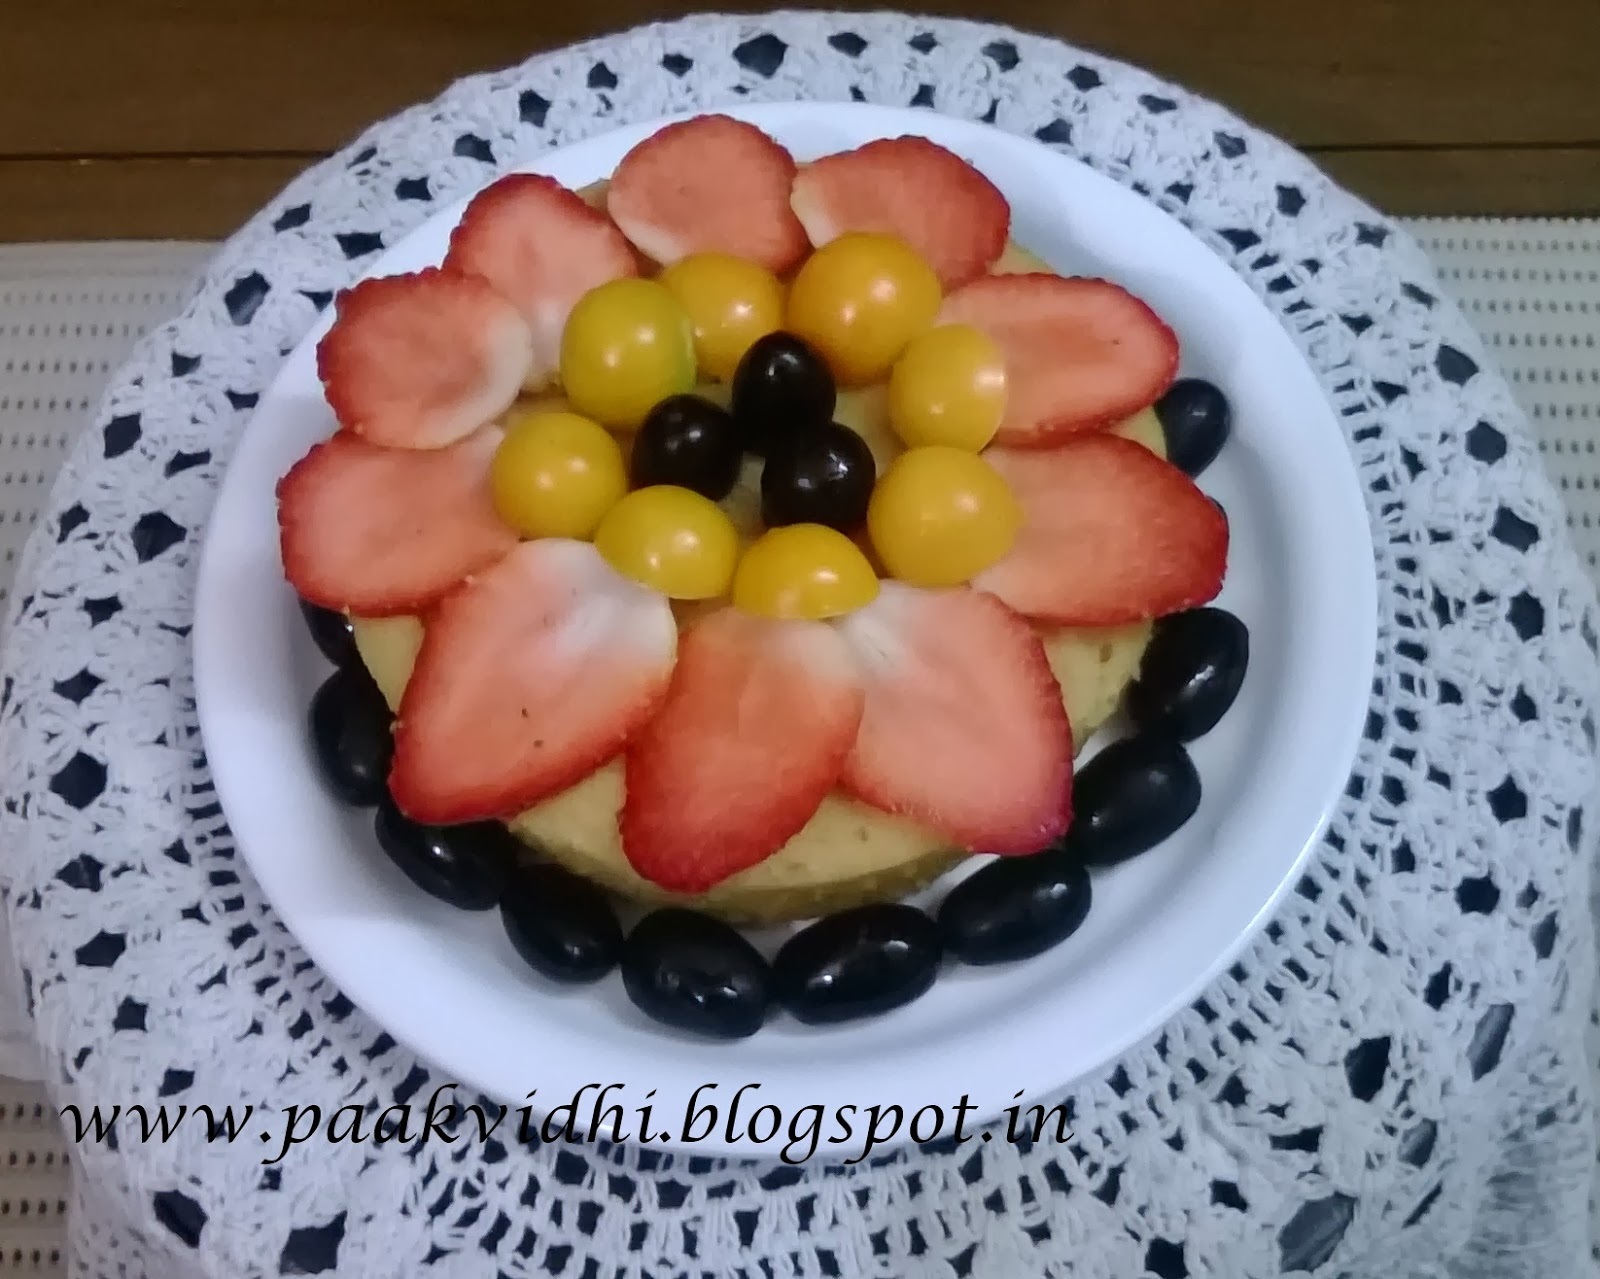 http://paakvidhi.blogspot.in/2014/02/eggless-biscuit-cake.html